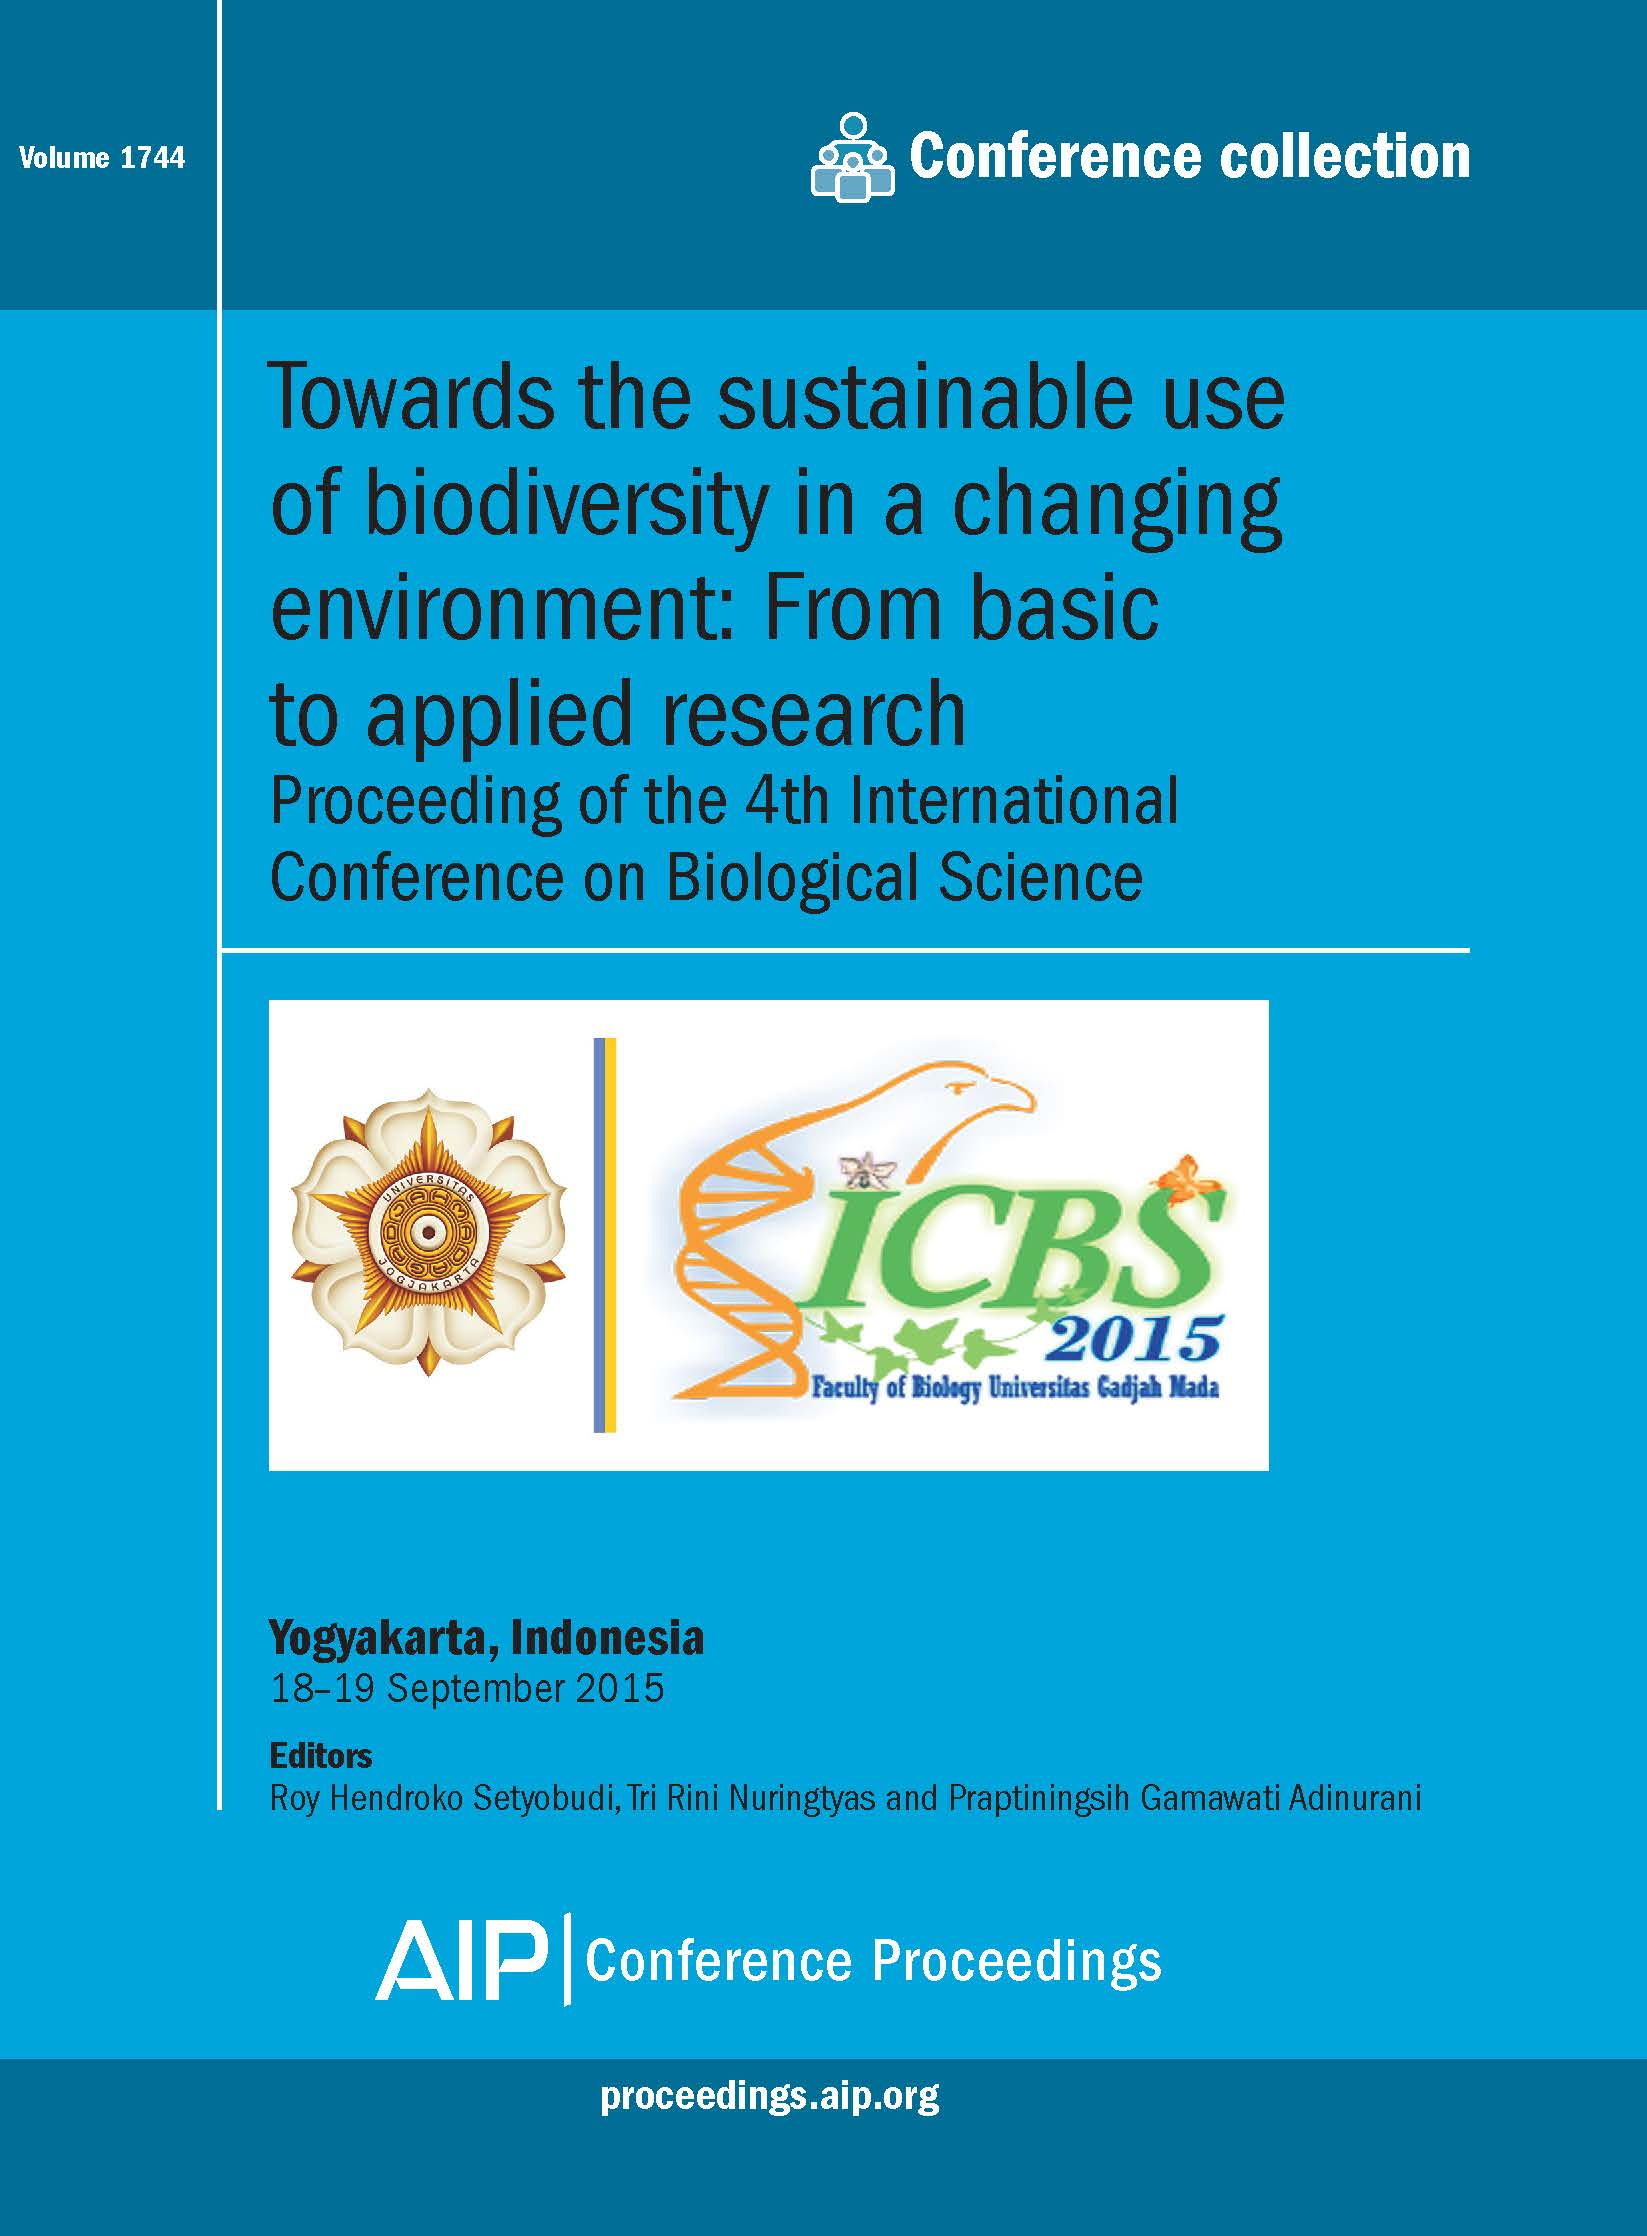 Volume 1744: Towards the sustainable use of biodiversity in